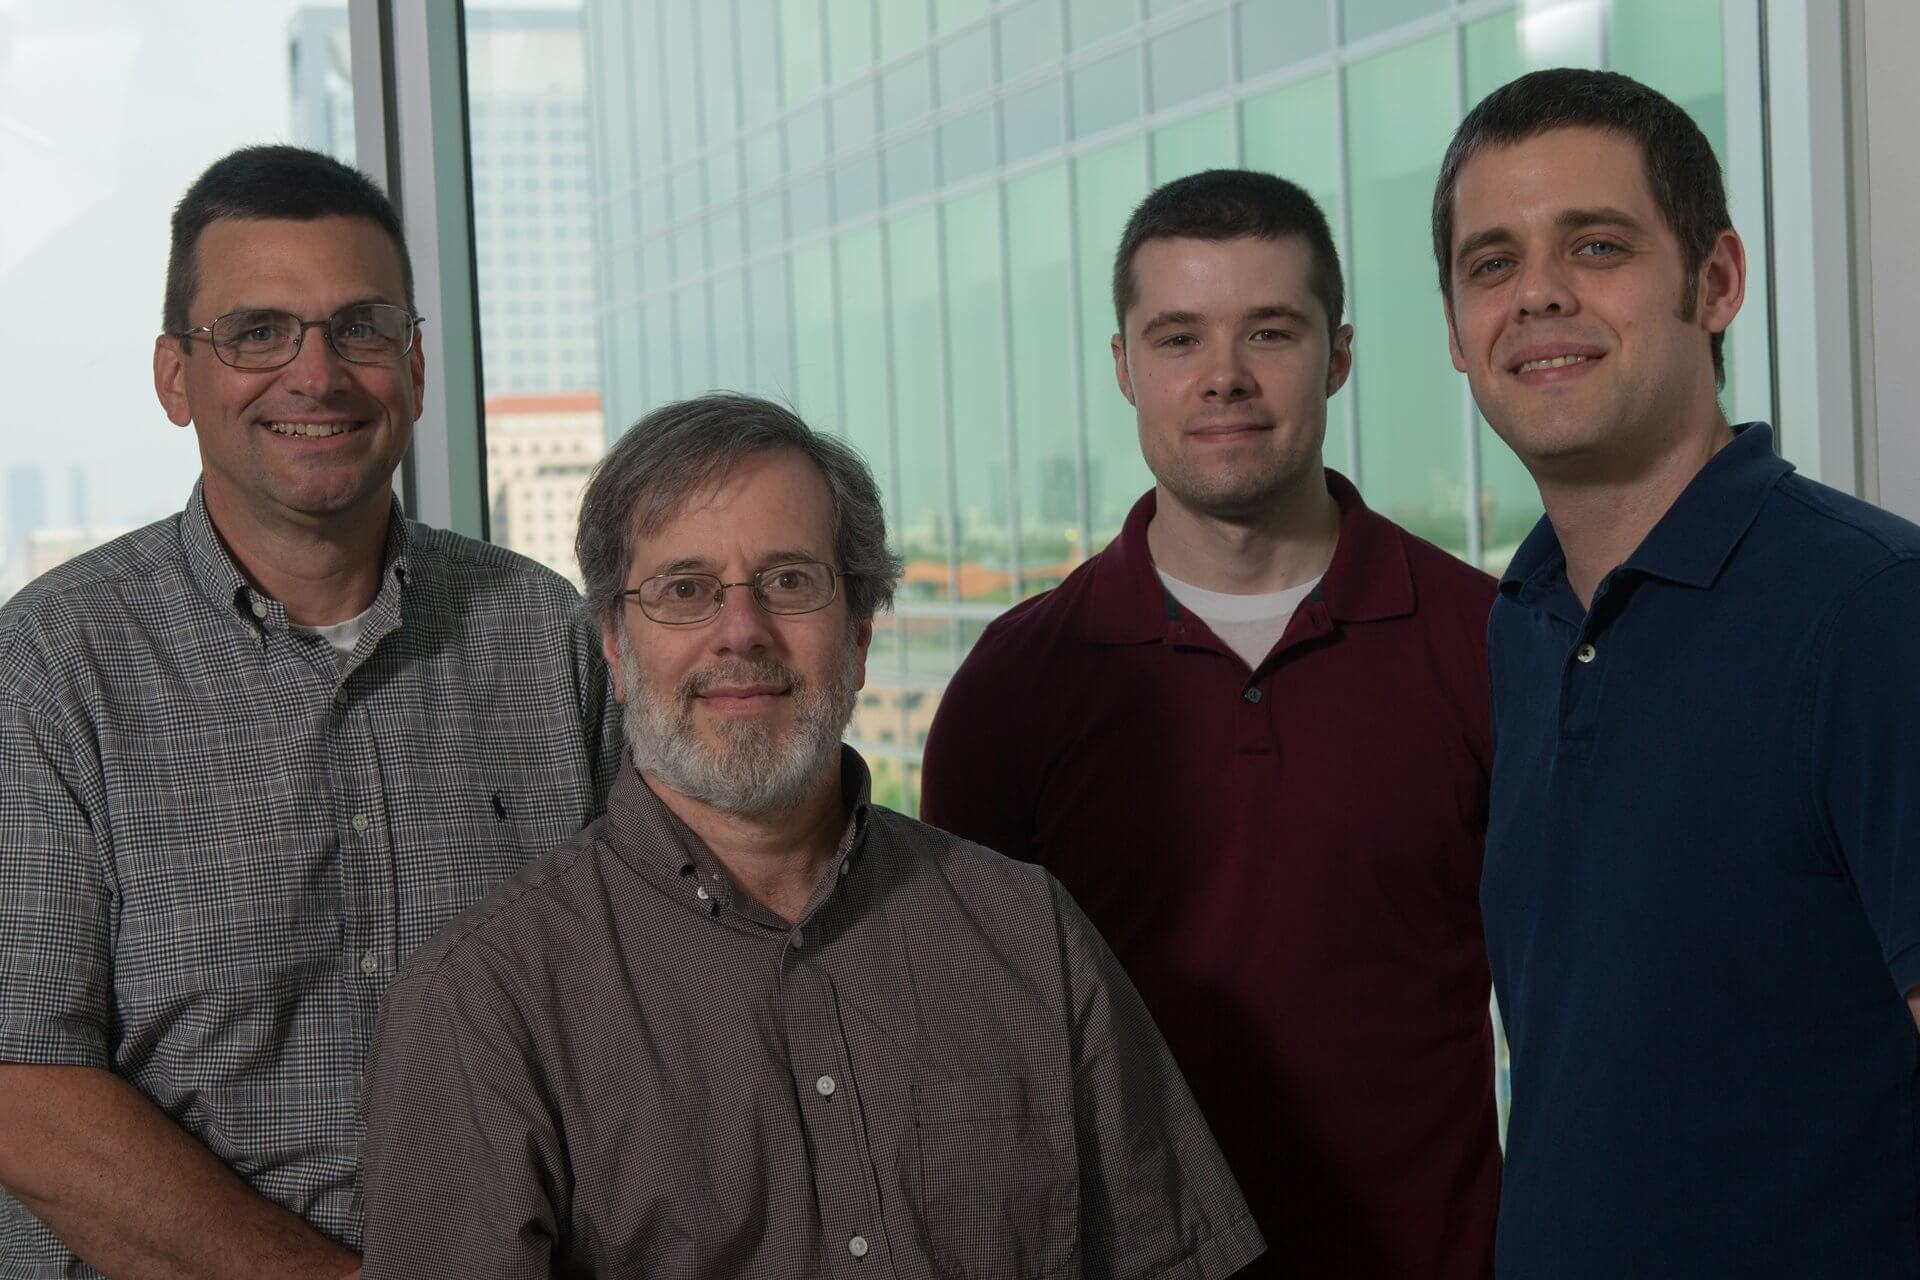 A four-year study by Rice University biochemists (from left) James McNew, Michael Stern, James Summerville and Joseph Faust has revealed specific neuronal defects that arise from two genetic defects known to cause hereditary spastic paraplegia. (Photo by Jeff Fitlow/Rice University)